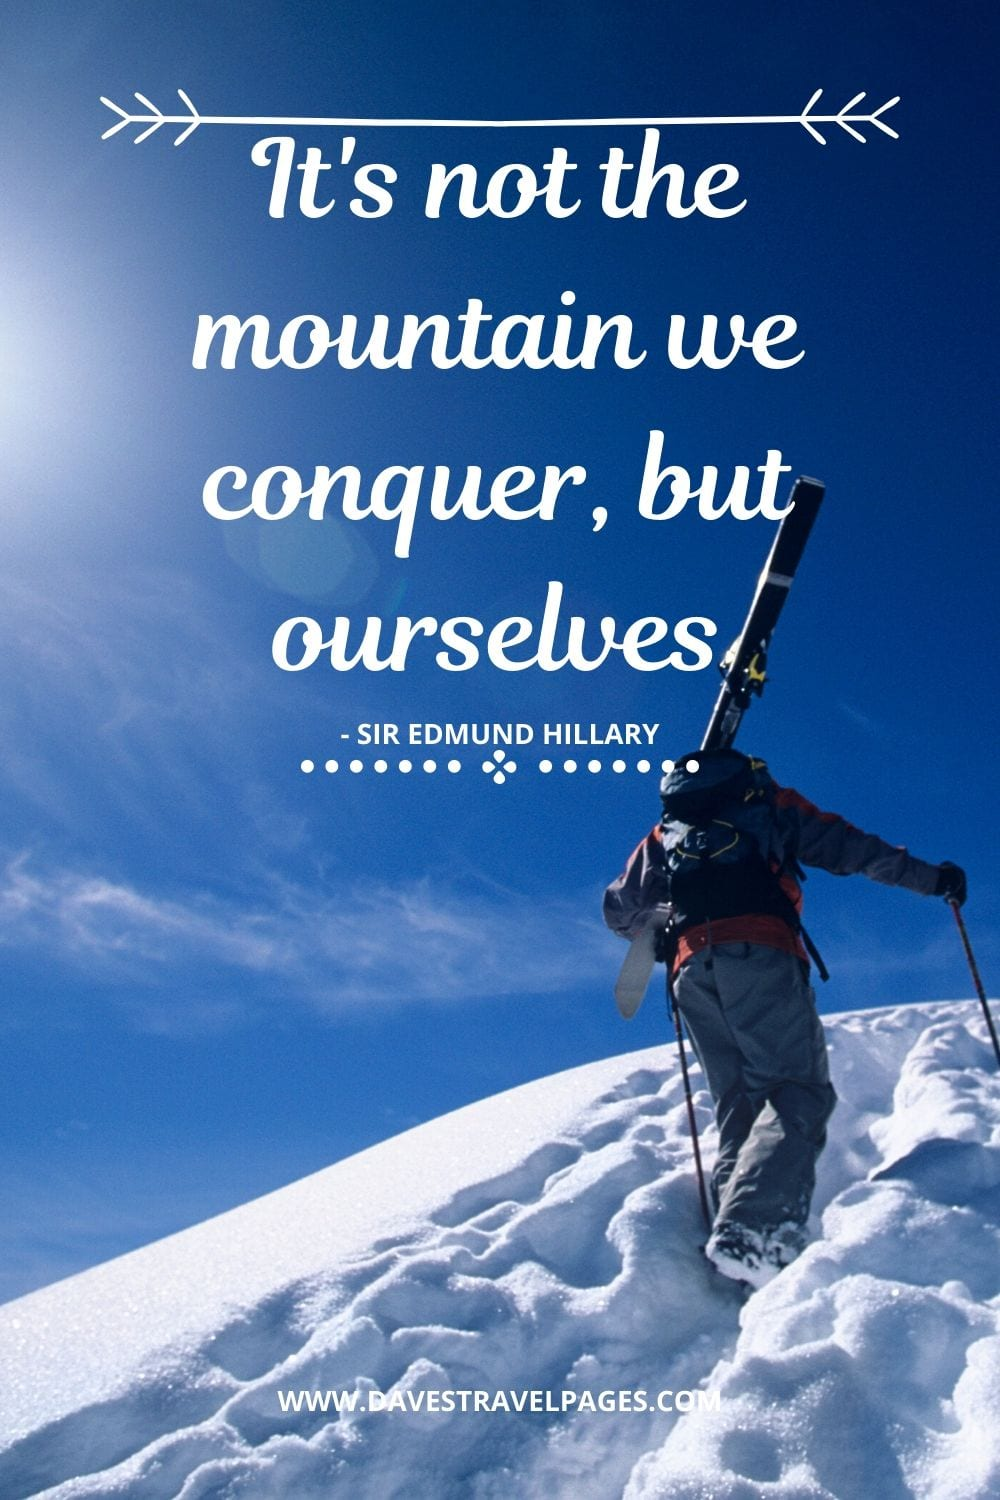 It's not the mountain we conquer, but ourselves - Sir Edmund Hillary Quotes